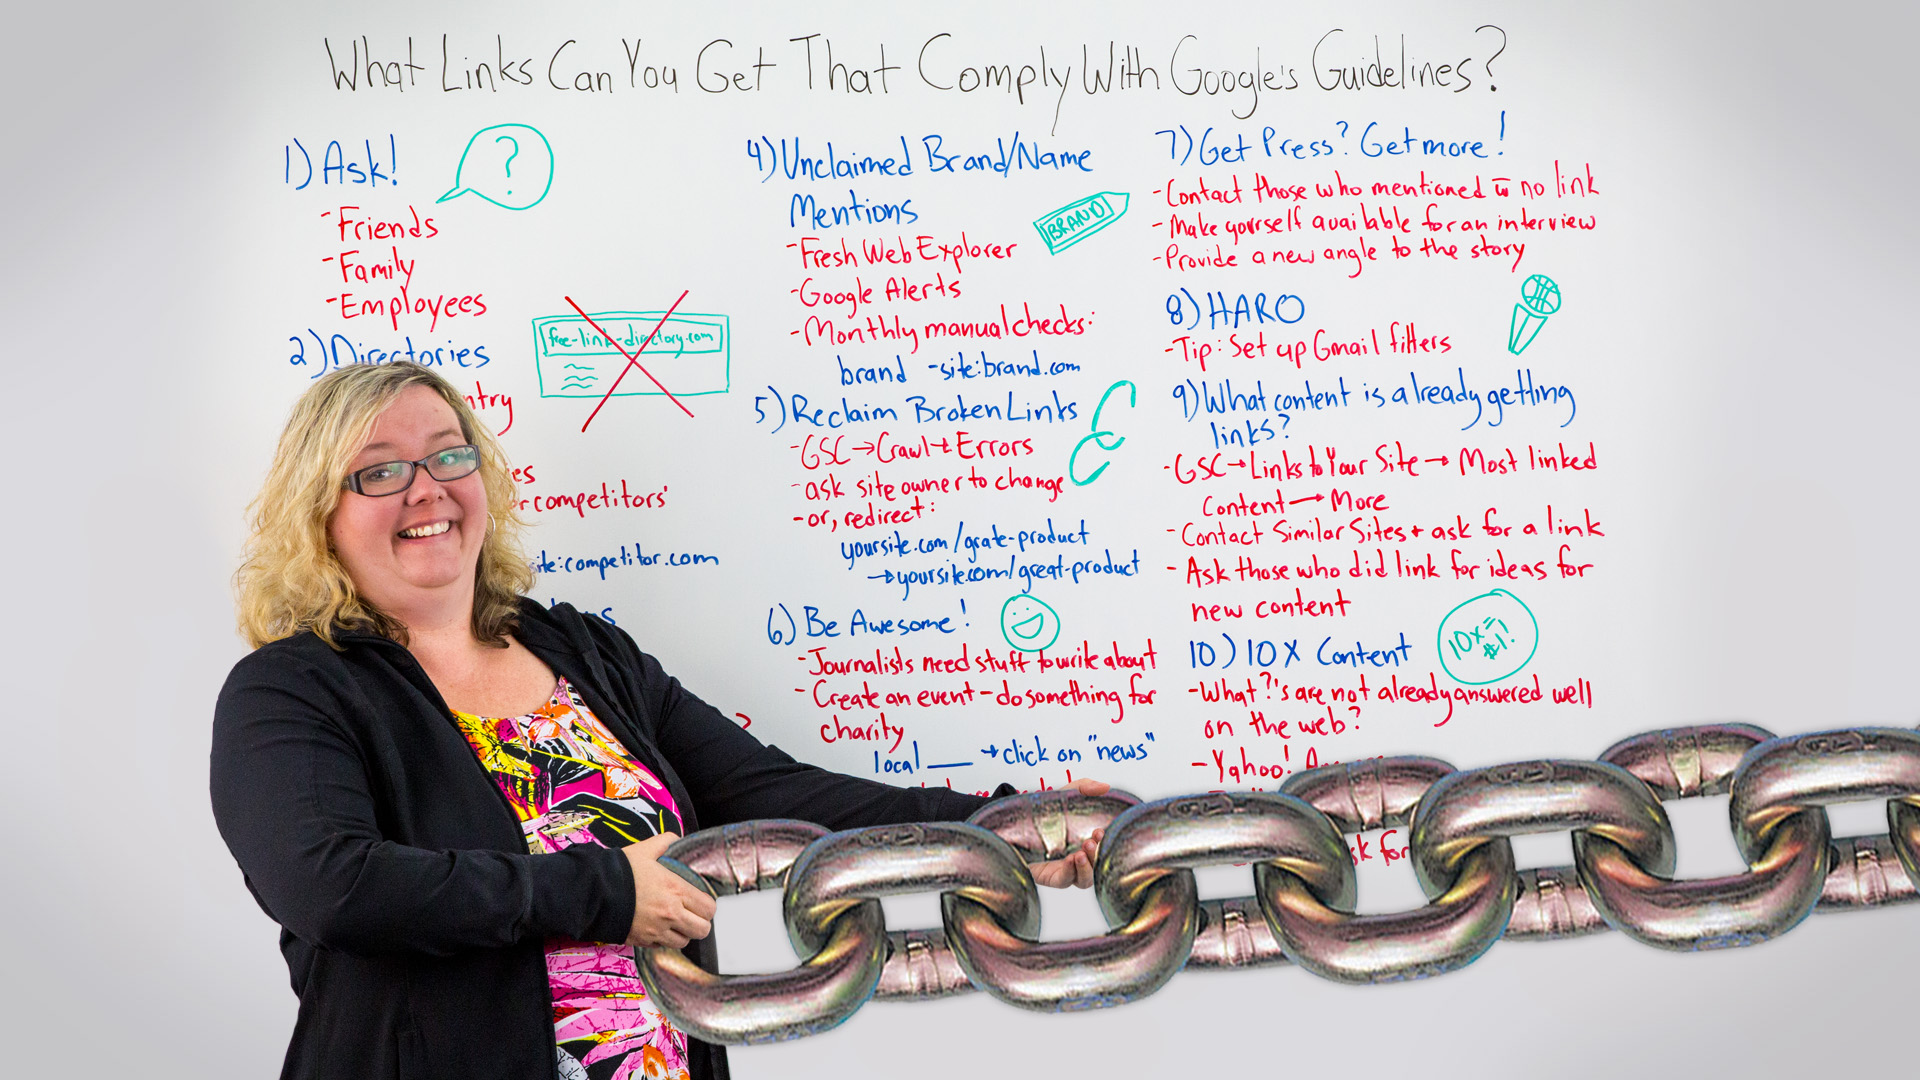 https://moz.com/blog/what-links-comply-googles-guidelines-whiteboard-friday